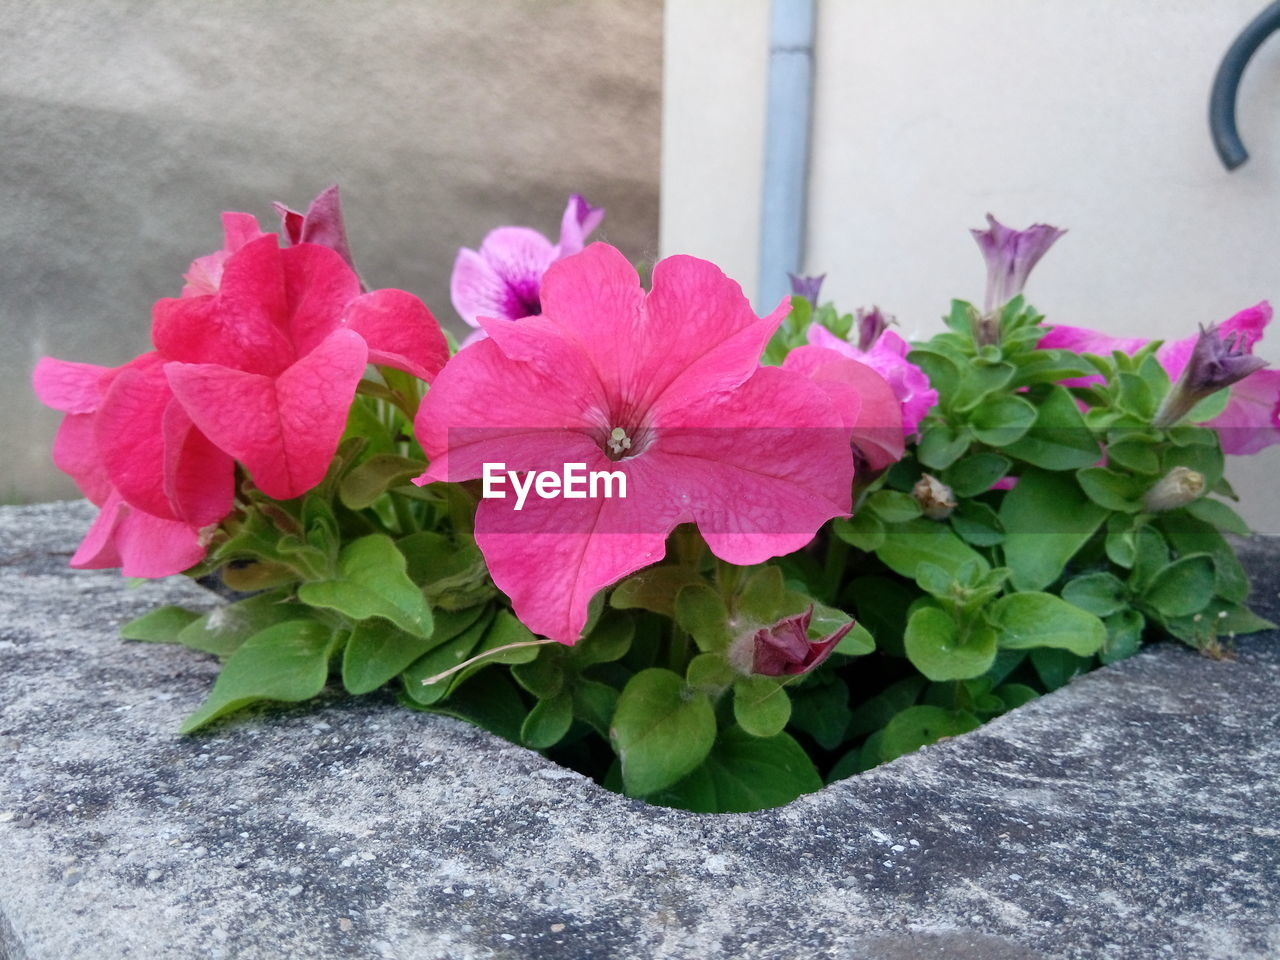 flowering plant, flower, plant, petal, vulnerability, beauty in nature, freshness, fragility, pink color, close-up, inflorescence, growth, flower head, nature, leaf, plant part, no people, day, outdoors, focus on foreground, flower pot